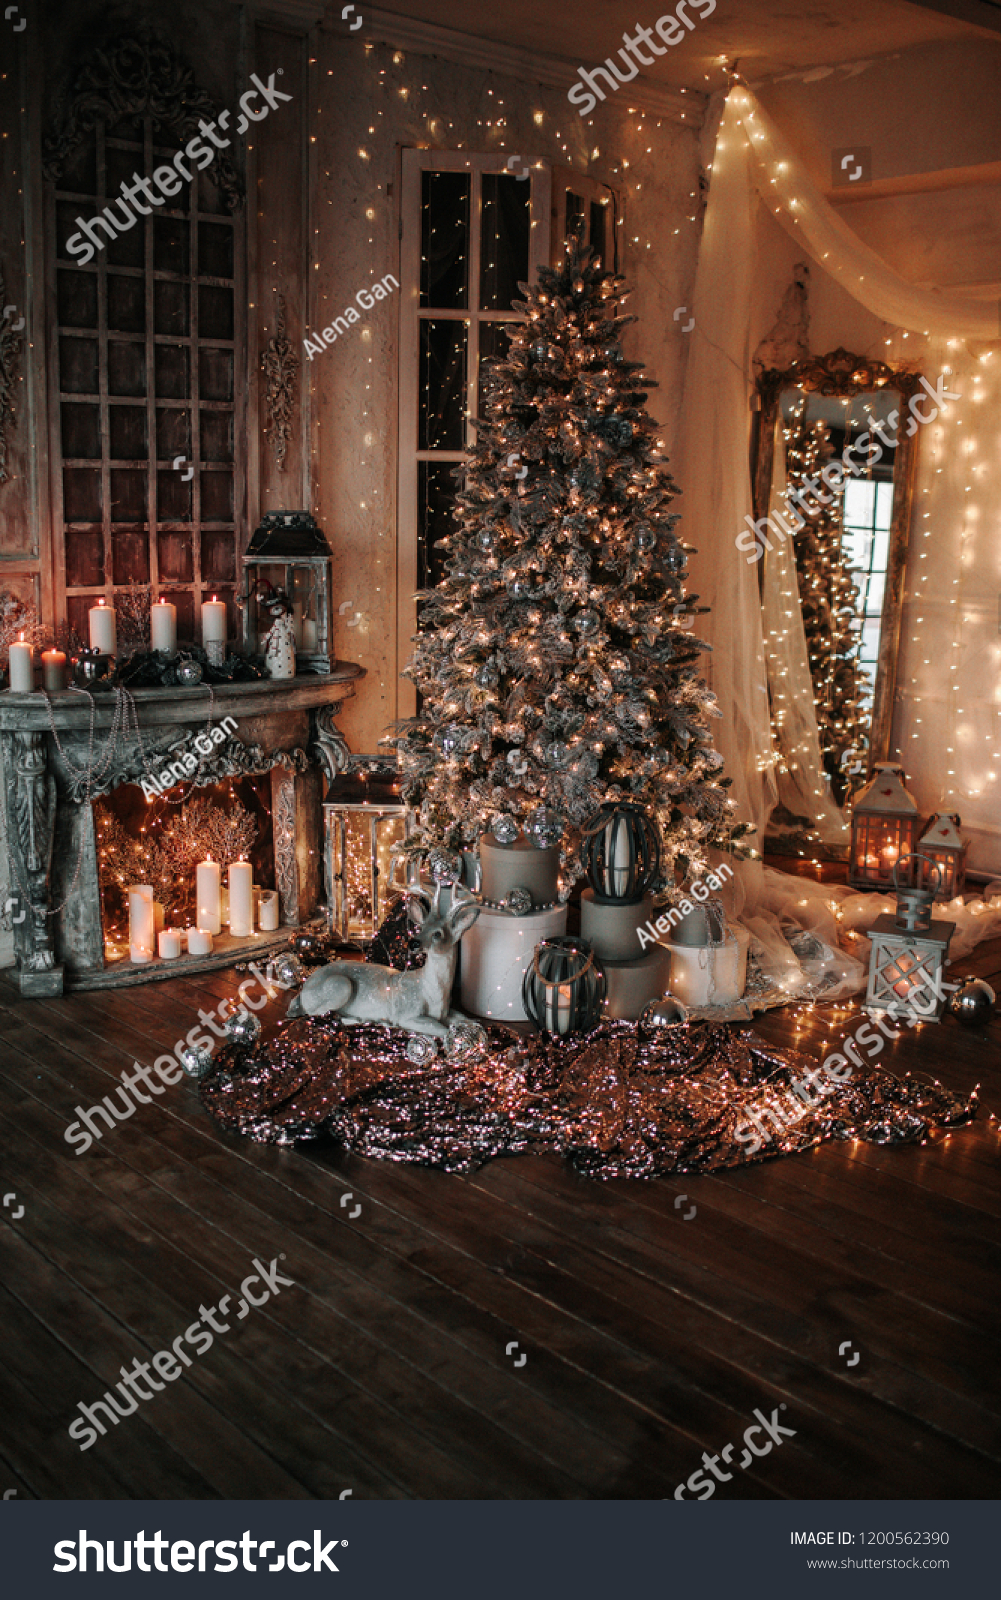 A Christmas Interior Design Like No Other From Darci Ilich The Cross